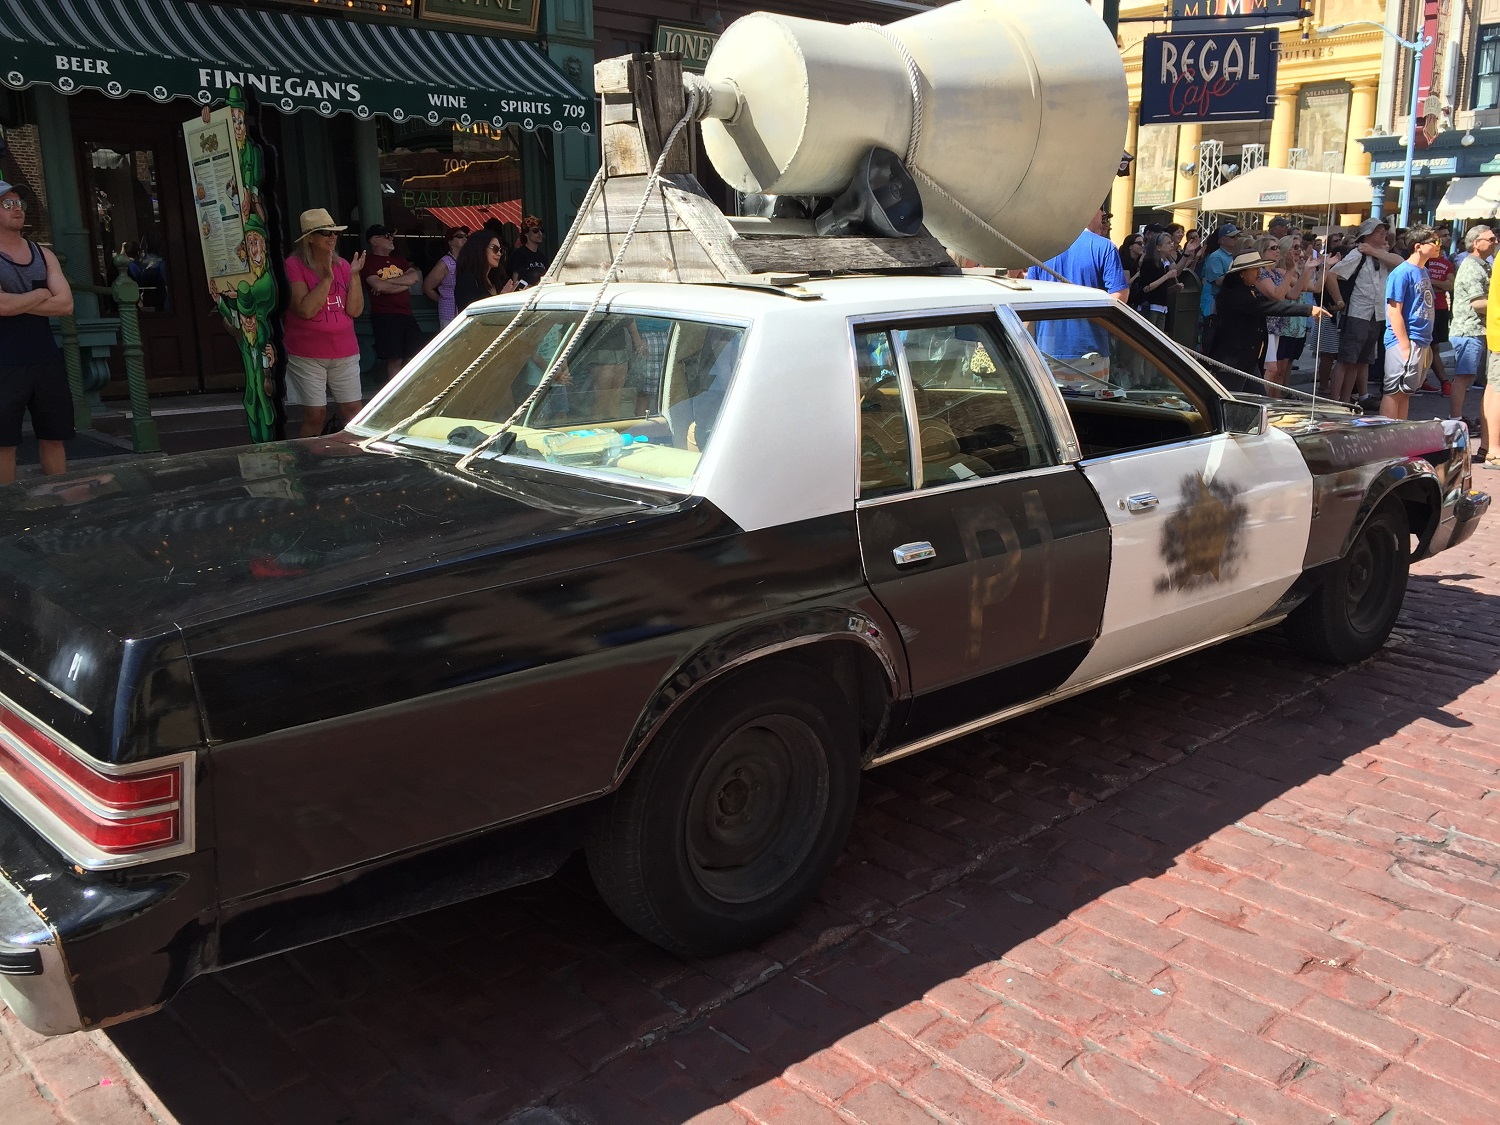 The Blues Brothers car provides transport to the New York area for Jake and Elwood.